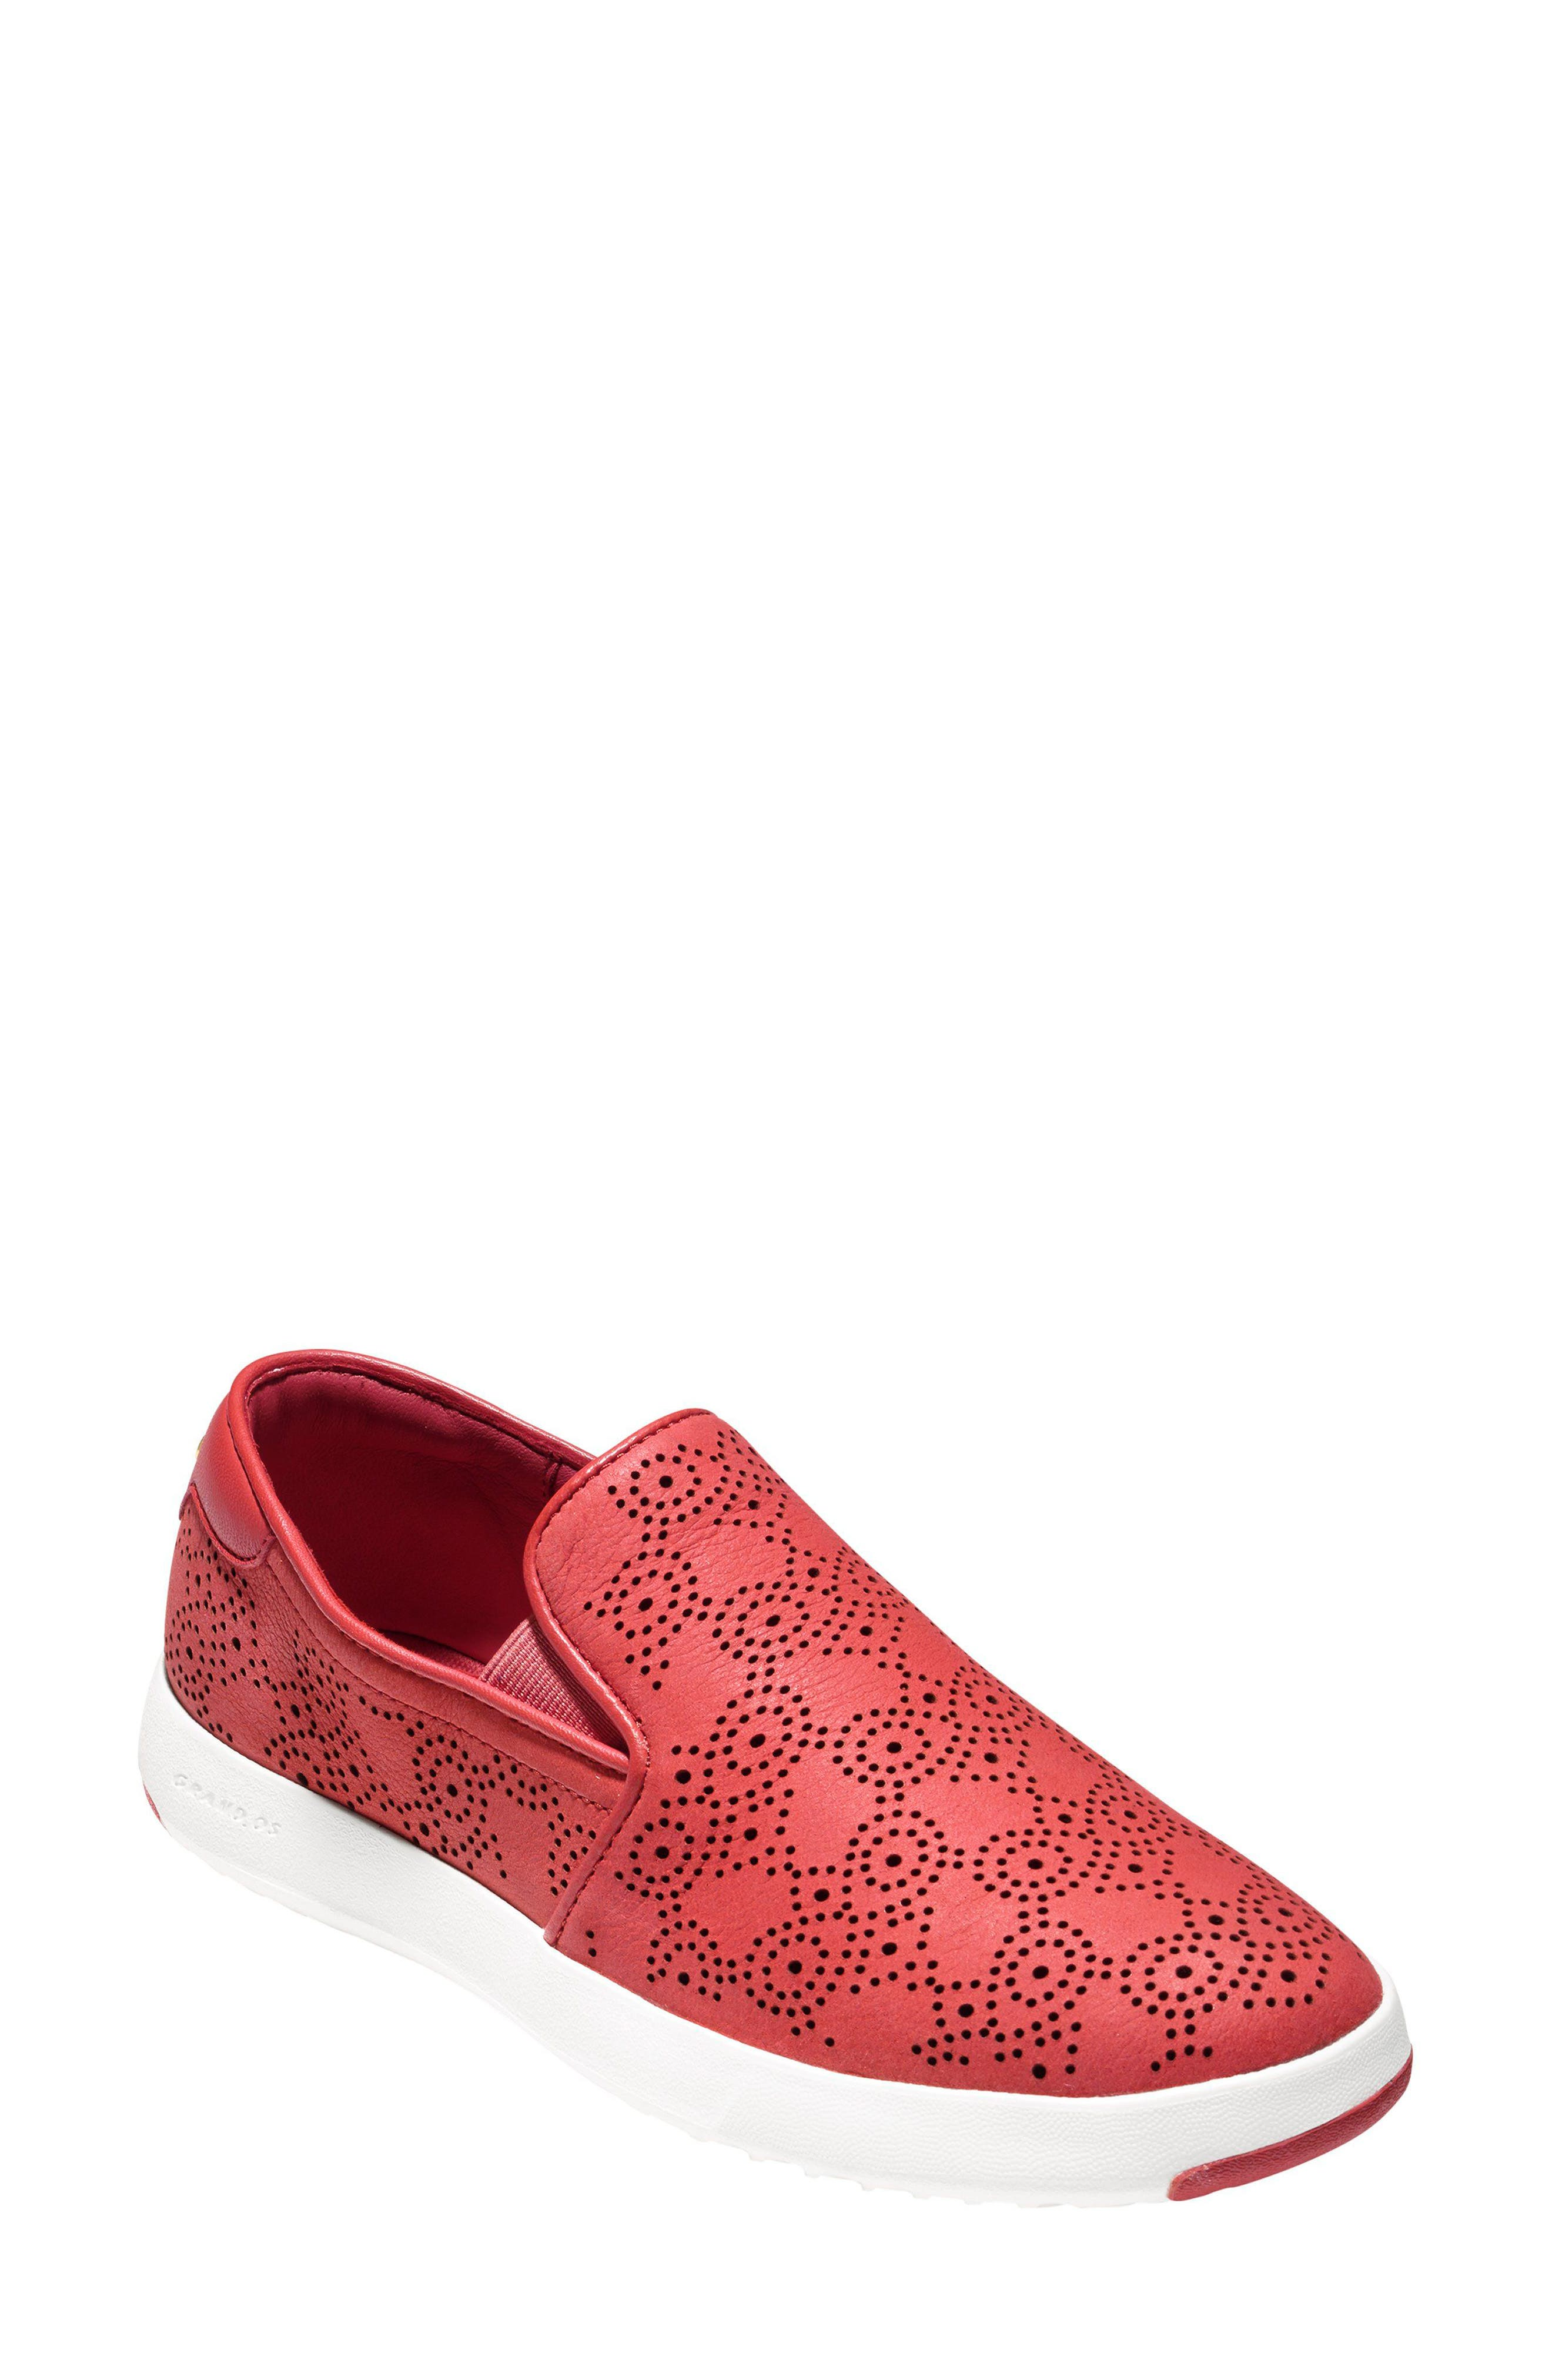 Alternate Image 1 Selected - Cole Haan GrandPro Perforated Slip-On Sneaker (Women)